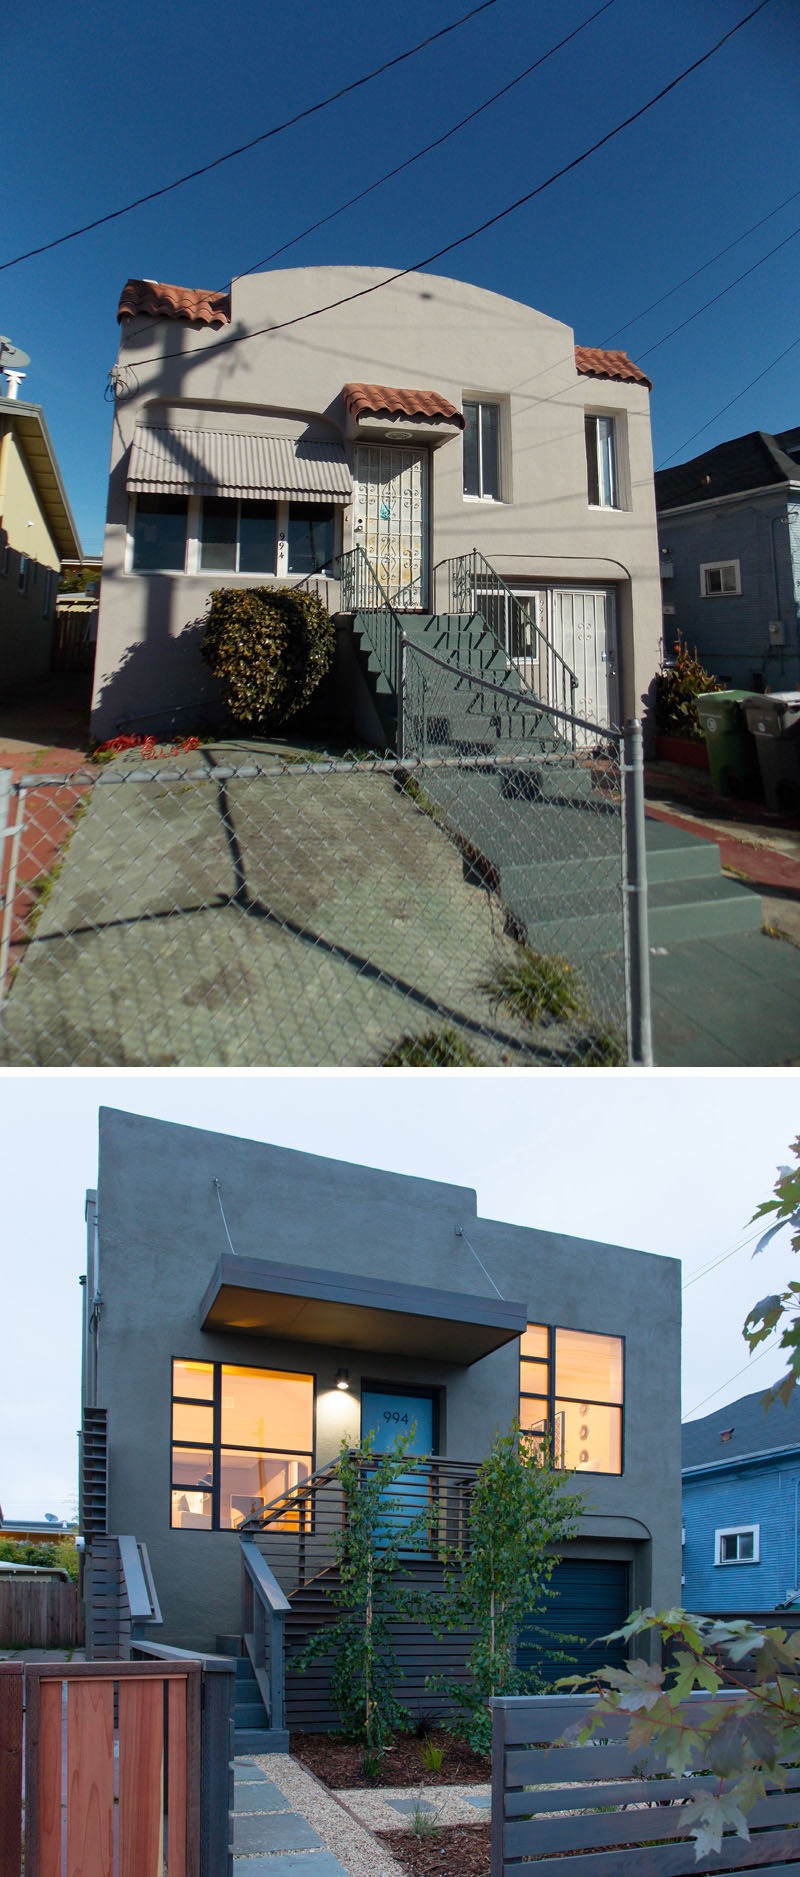 House Renovation Ideas   16 Inspirational Before & After Residential Projects   CONTEMPORIST